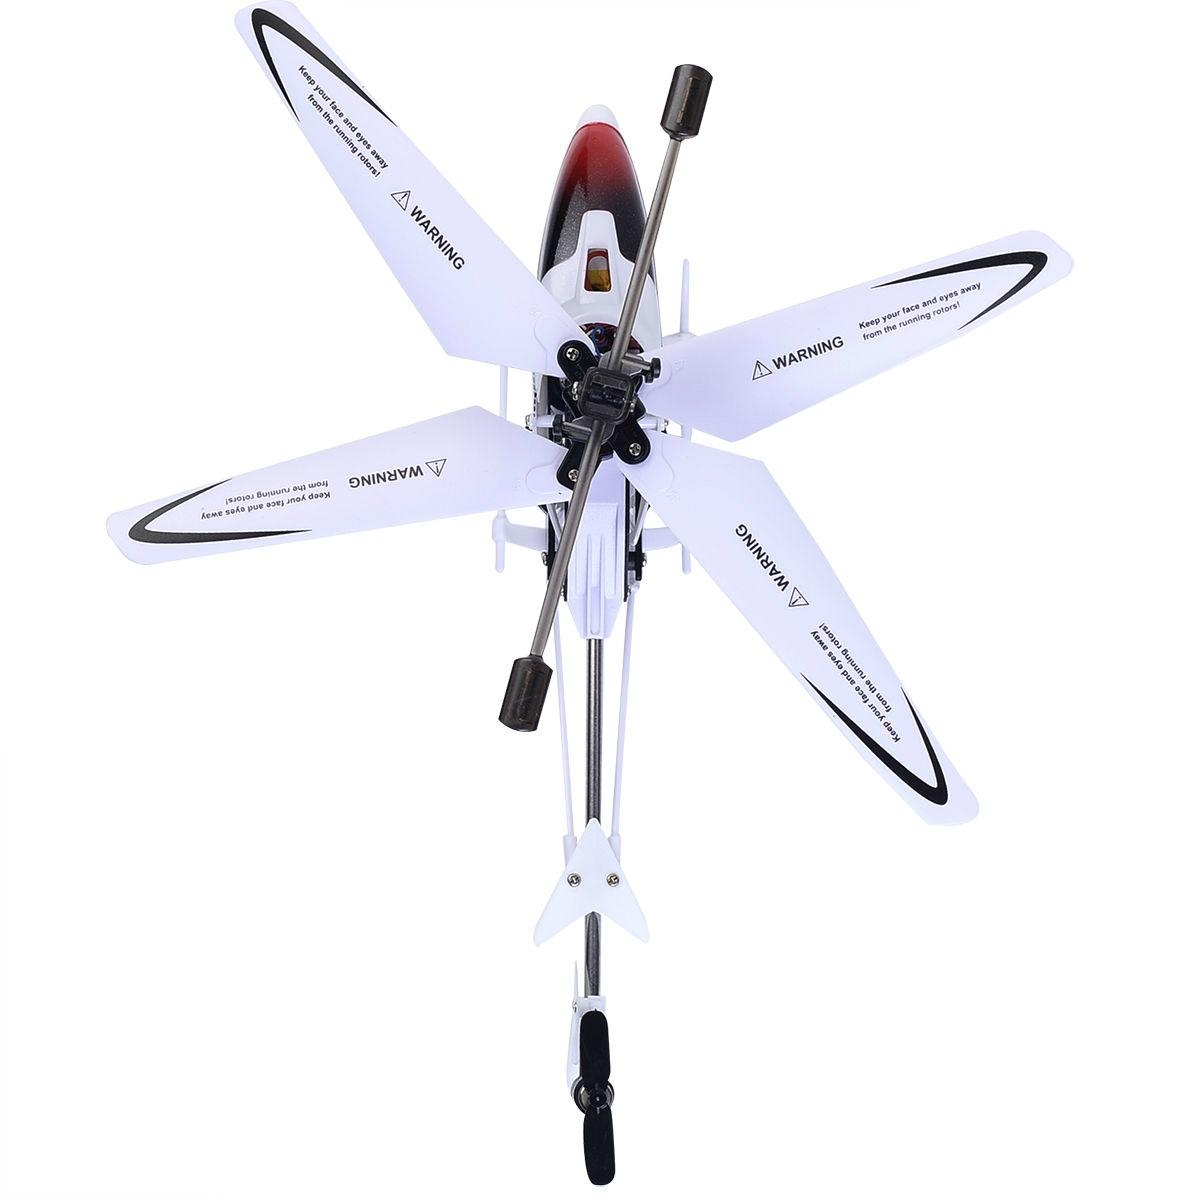 Syma S5 3CH Remote Control Mini RC Helicopter LED Searching Light New 4